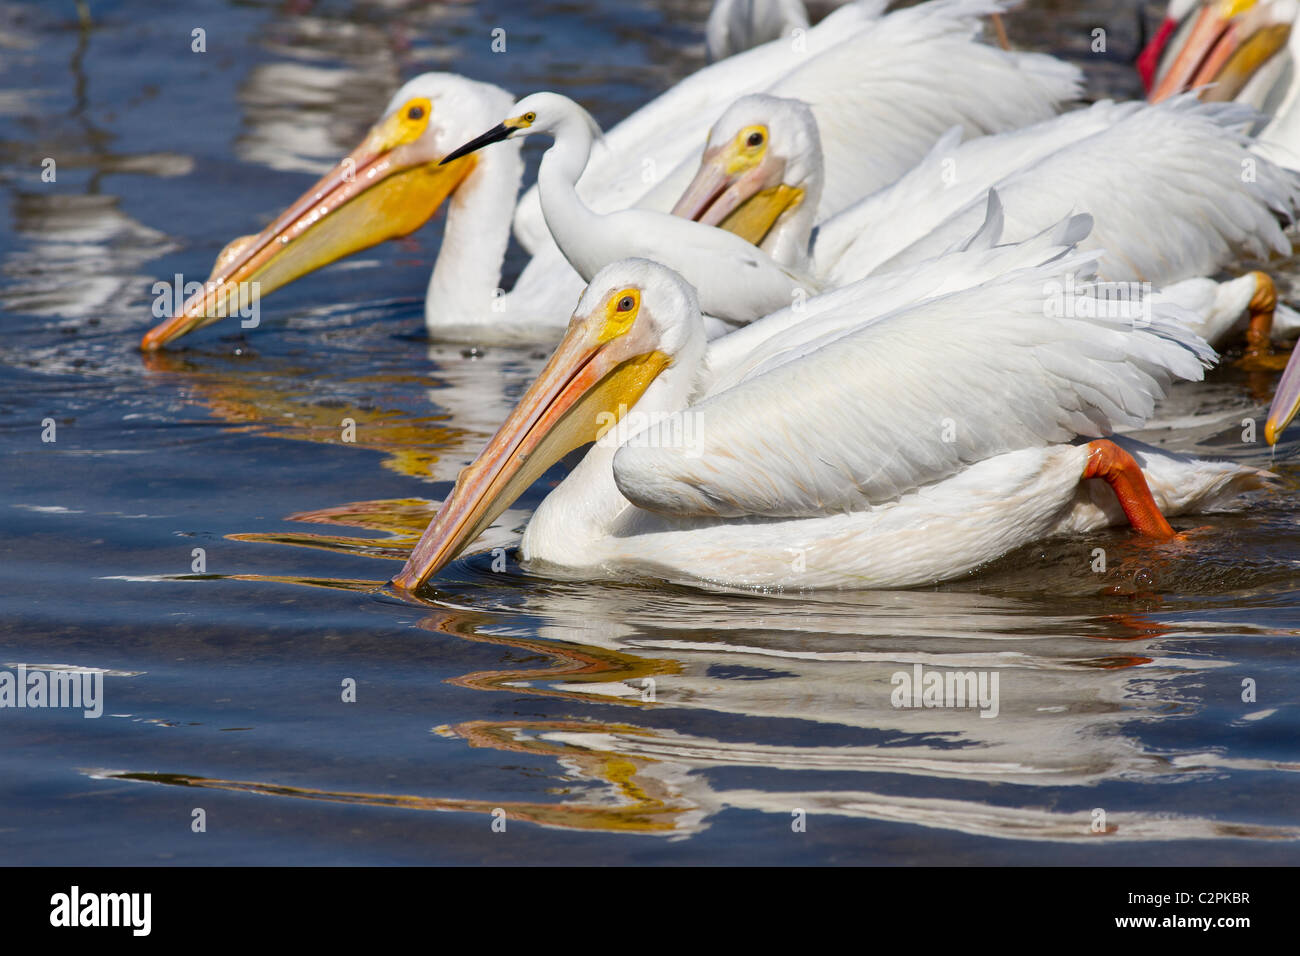 Pélican blanc, Pelicanus erythrorhynchos, Ding Darling Wildlife Refuge, Sanibel, Floride, USA Photo Stock